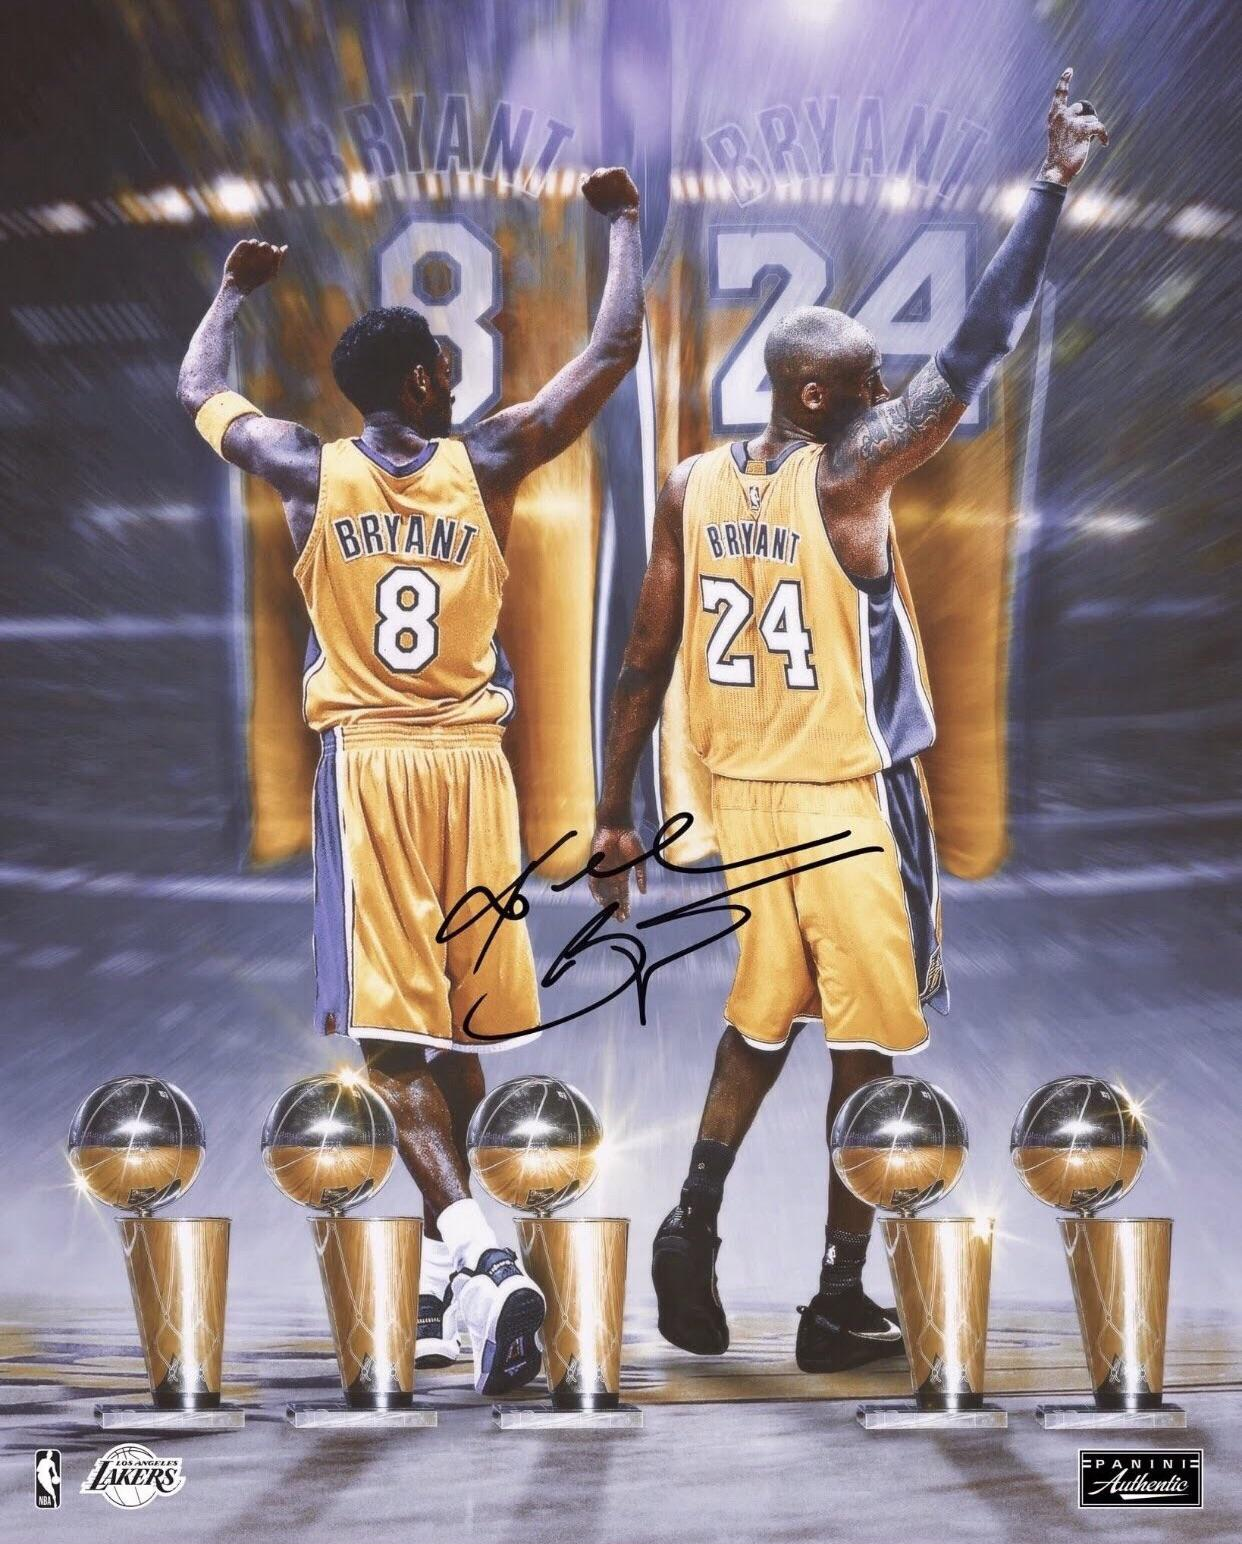 8 24 Happy Mamba Day Everyone Lakers